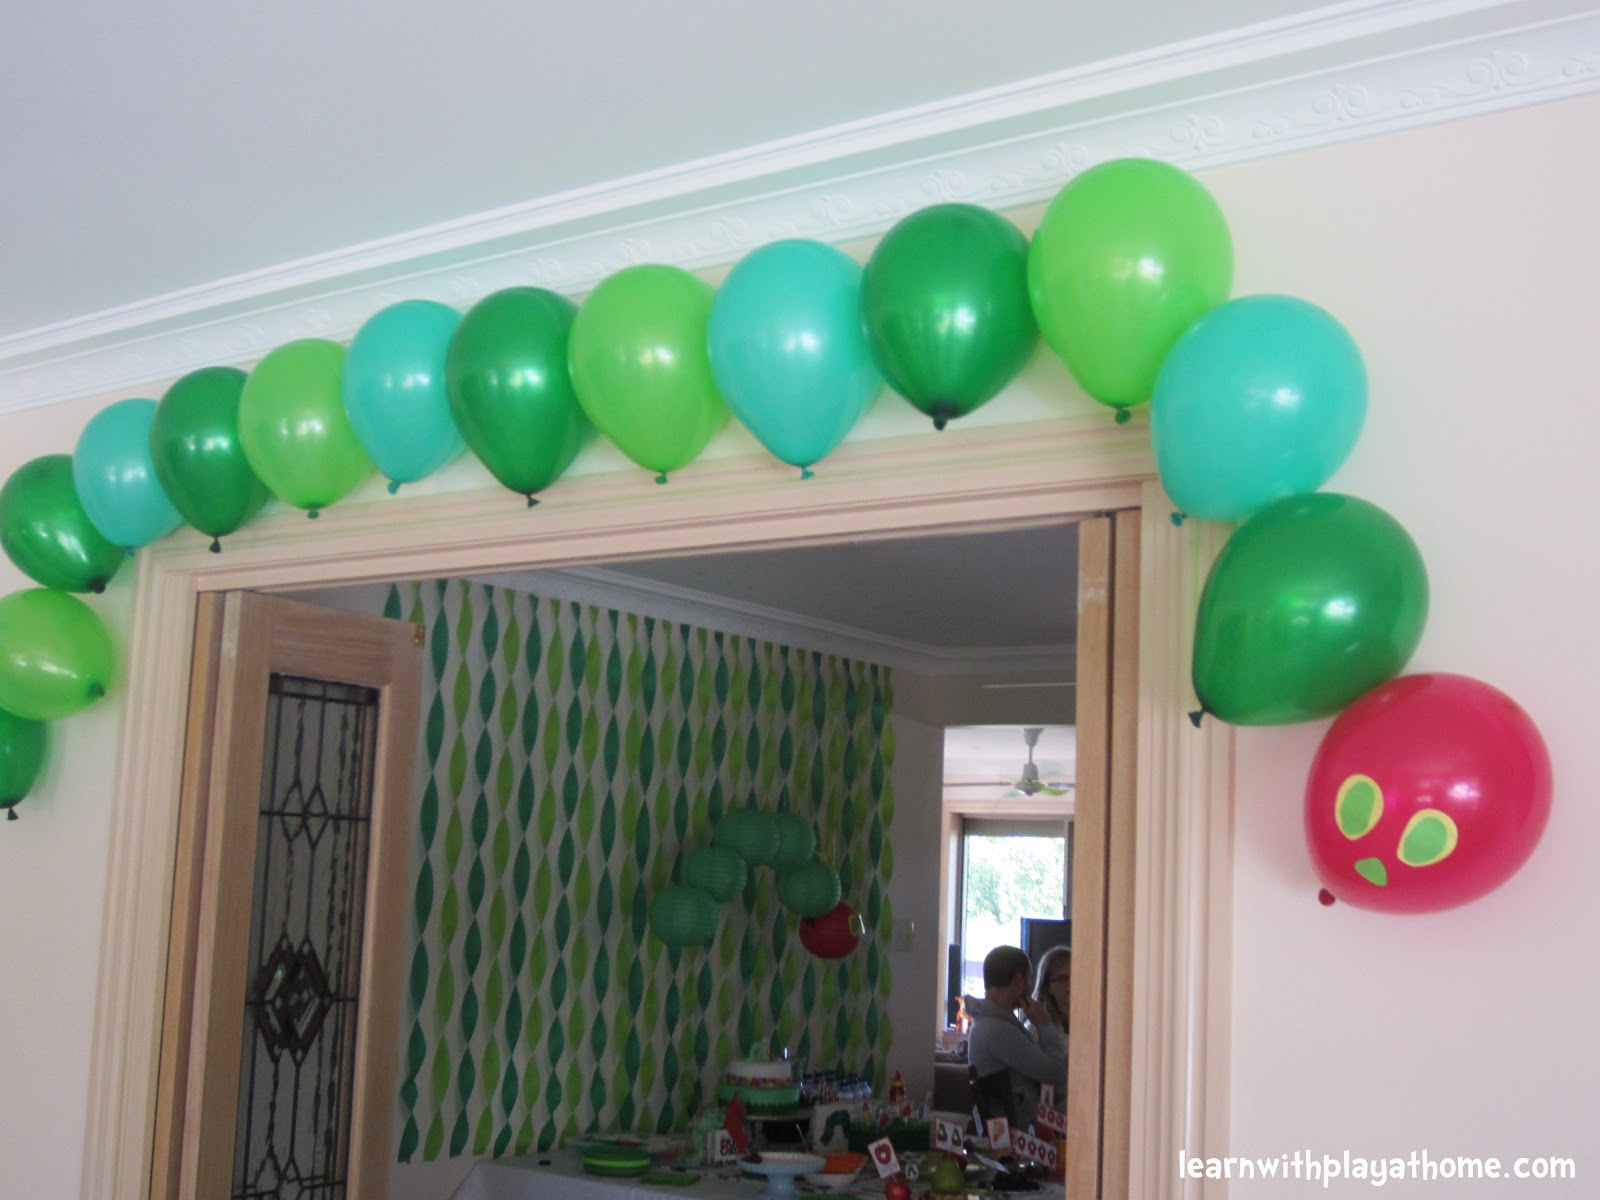 Learn with play at home diy party decorations for Balloon decoration for birthday at home